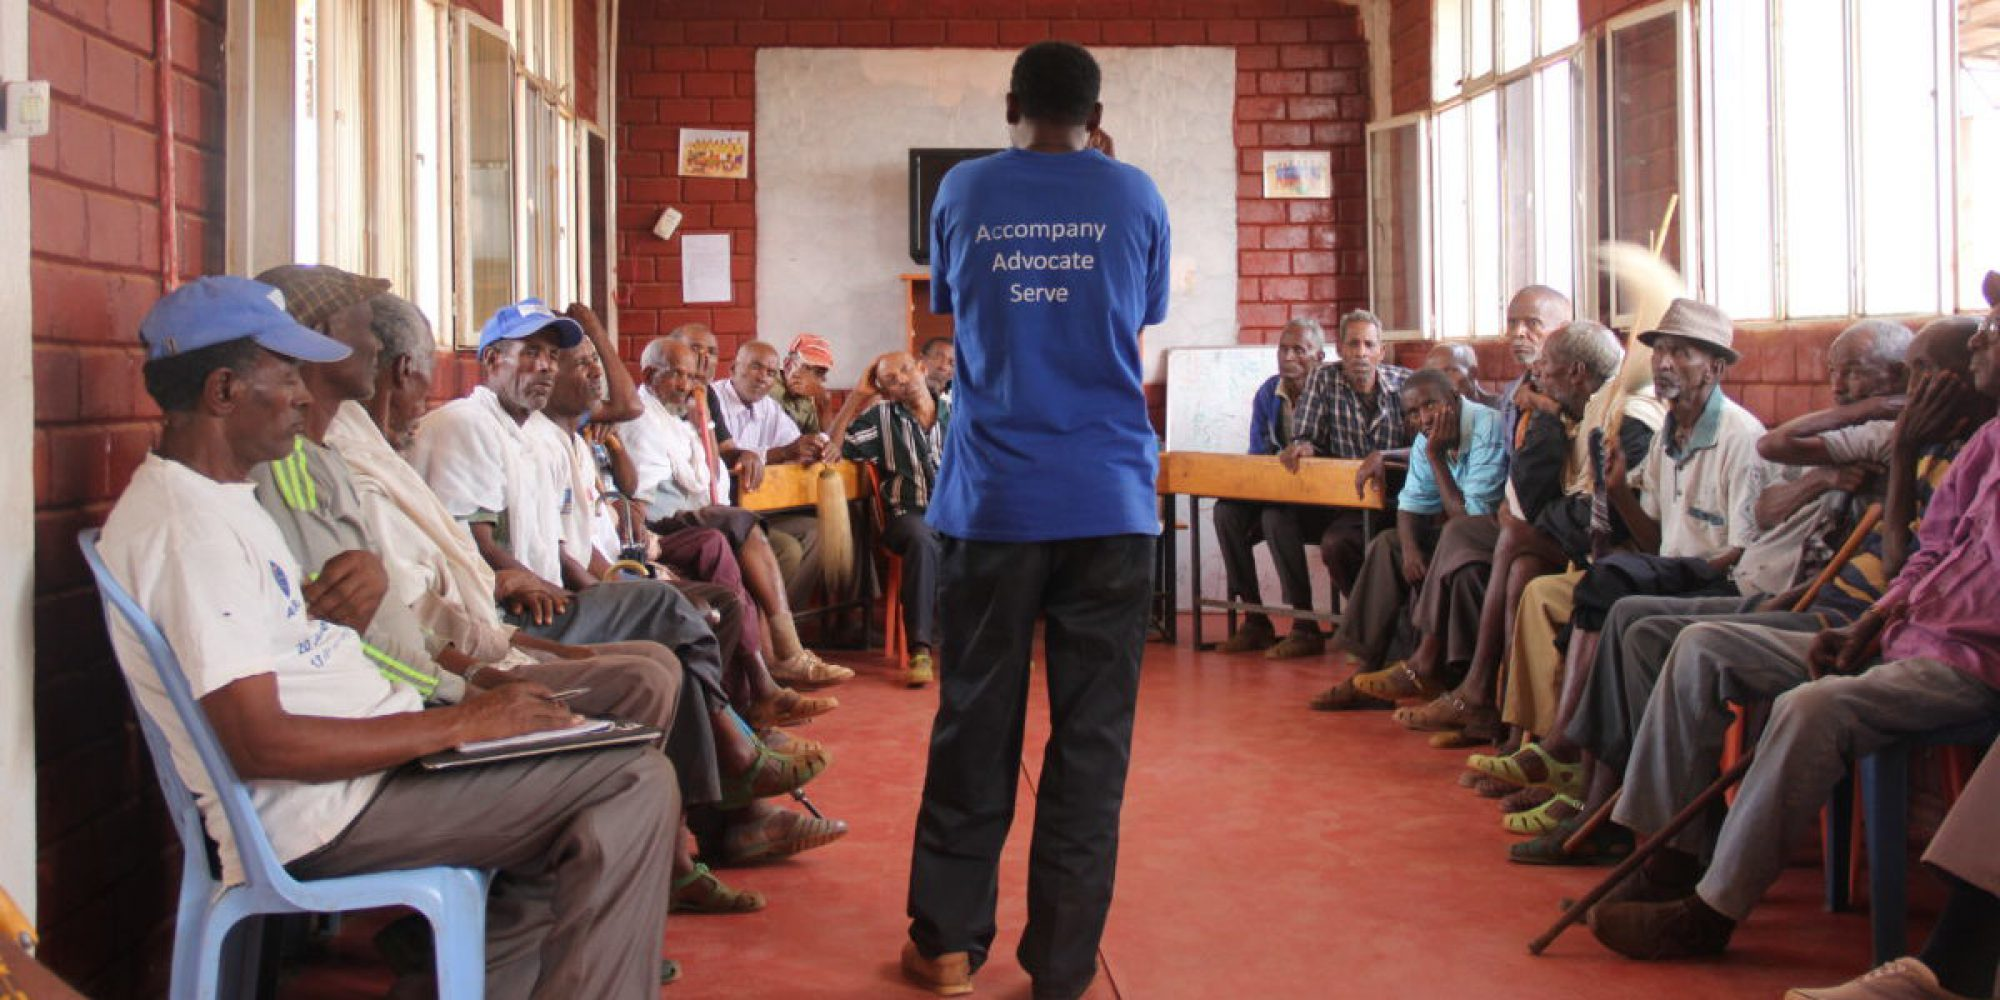 In Mai Aini refugee camp, northern Ethiopia, JRS hosts weekly meetings with Eritrean elders. The elders are given space to meet and time to express their concerns to JRS concerning food rations, health care, youth empowerment and other social issues in the camp.